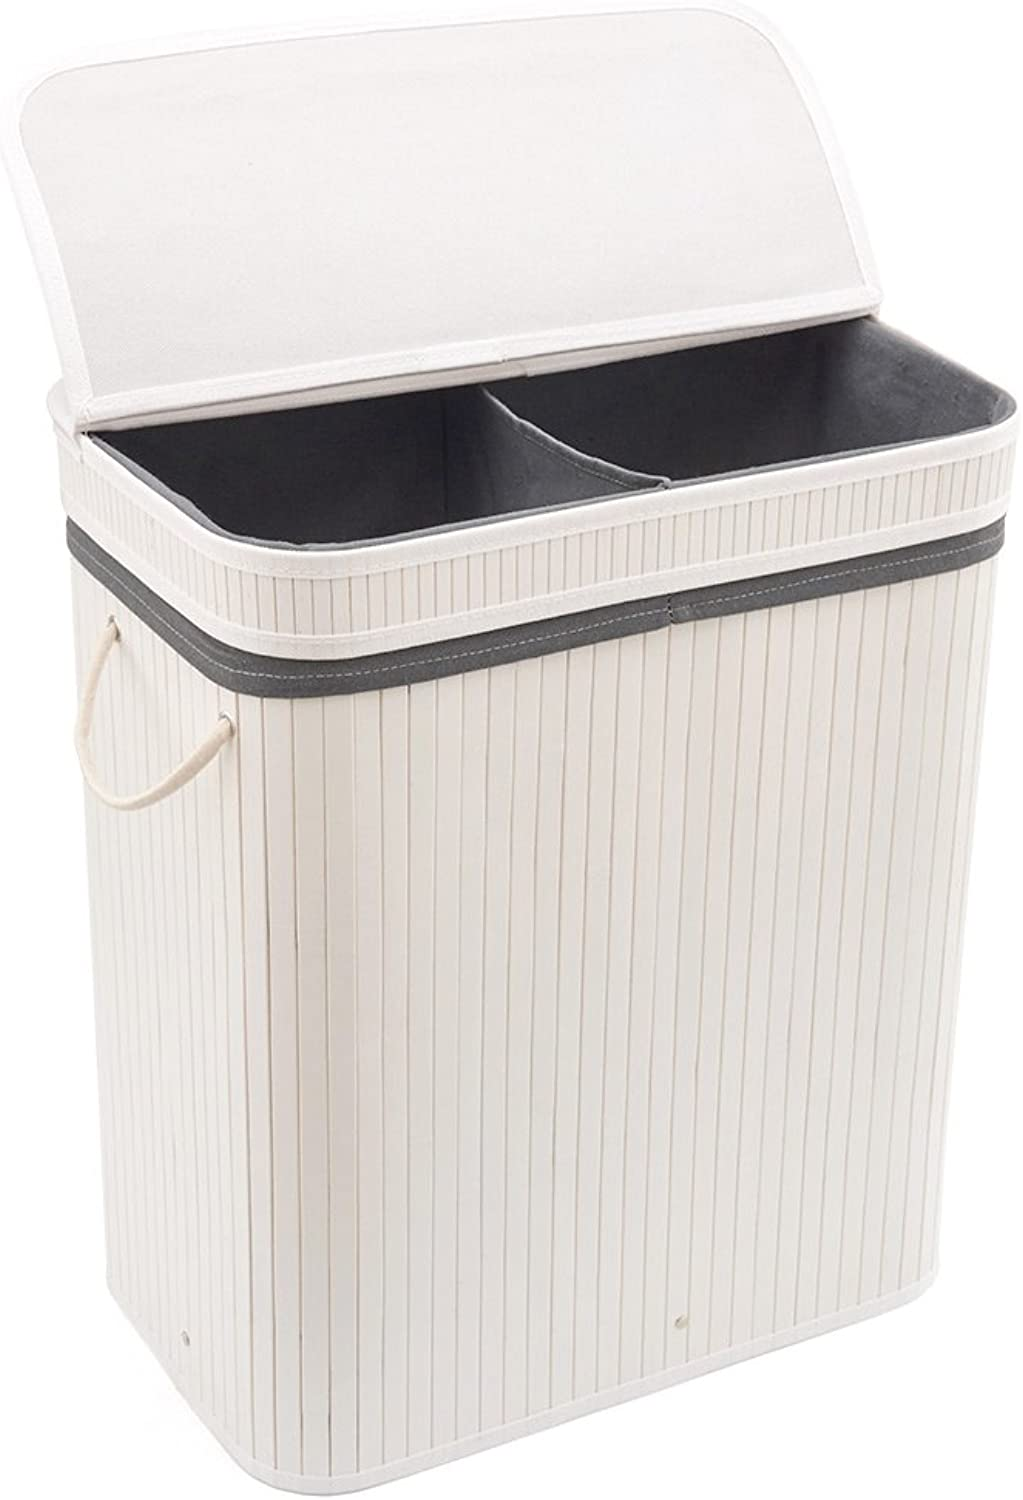 EZOWare 2 Section Folding Bamboo Hamper, Collapsible Bamboo Laundry Hamper Clothes Basket Container with Lid Handles and Cloth Liner - White